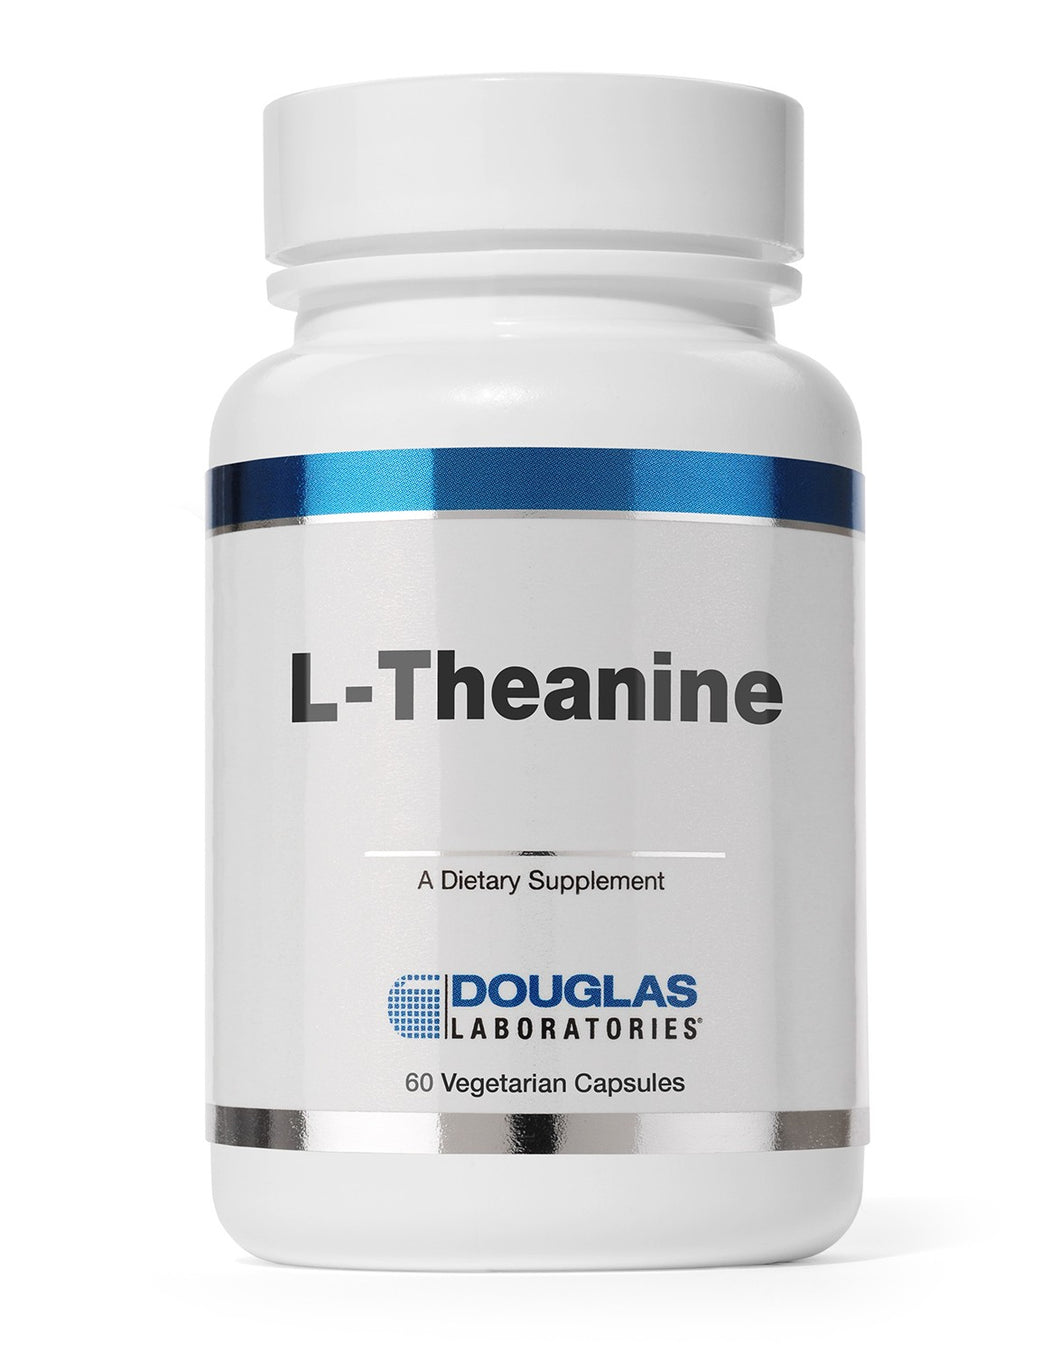 L-Theanine Capsule 60 Vegetarian Capsules Douglas Laboratories